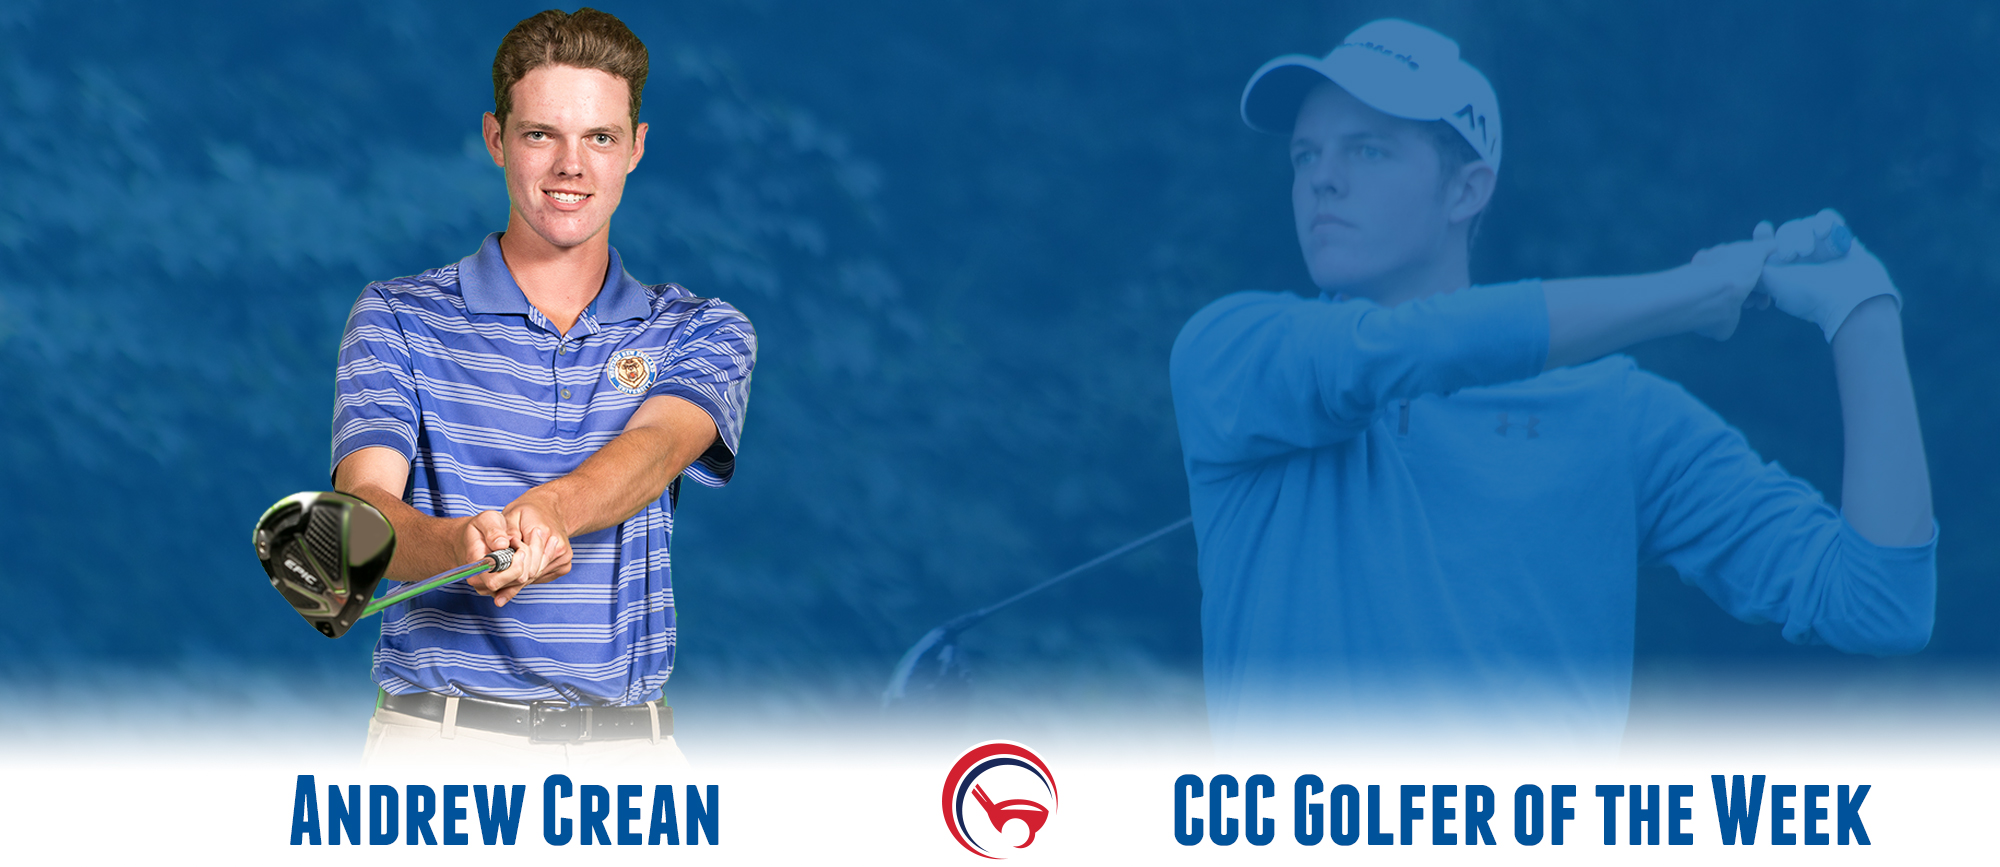 Andrew Crean Named CCC Golfer of the Week